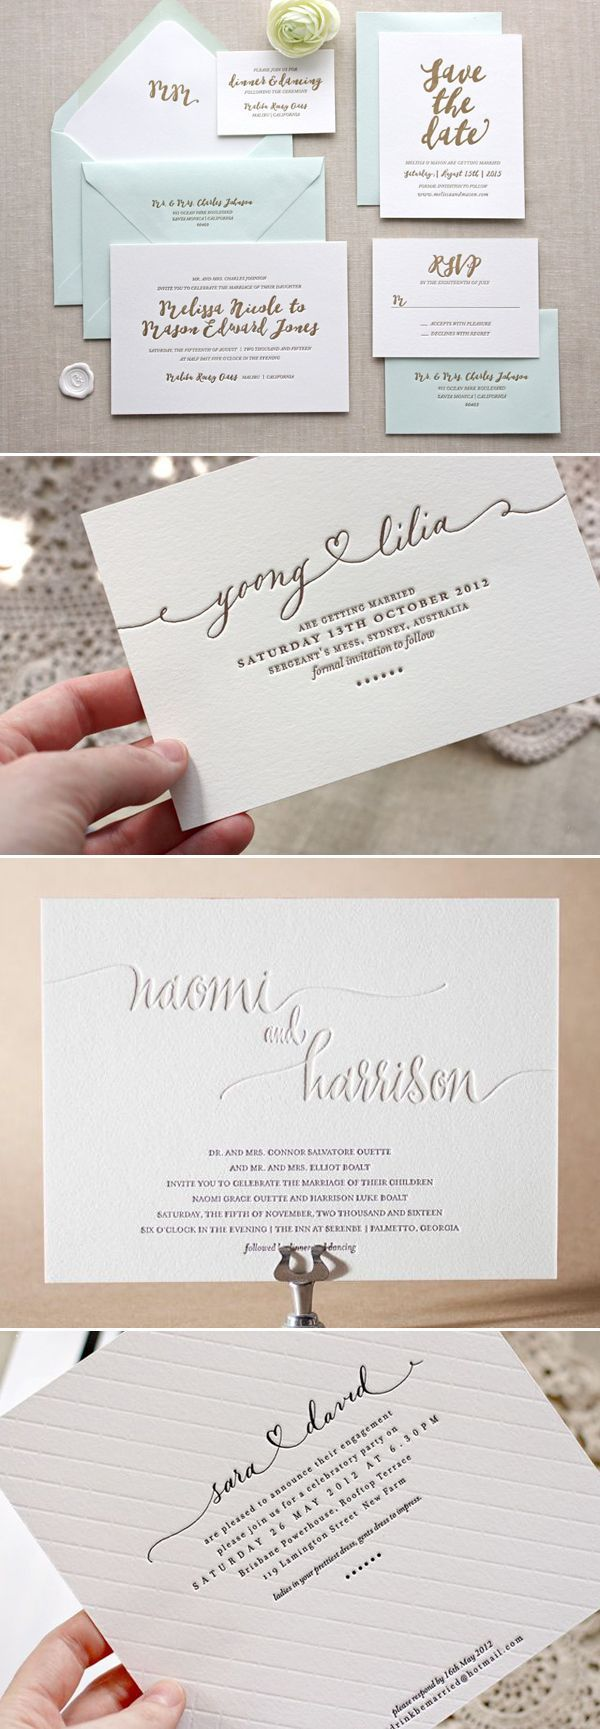 Wedding Invitation Design Ideas card 25 Best Ideas About Wedding Invitations On Pinterest Fairytale Wedding Invitations Creative Wedding Invitations And Wedding Invatations